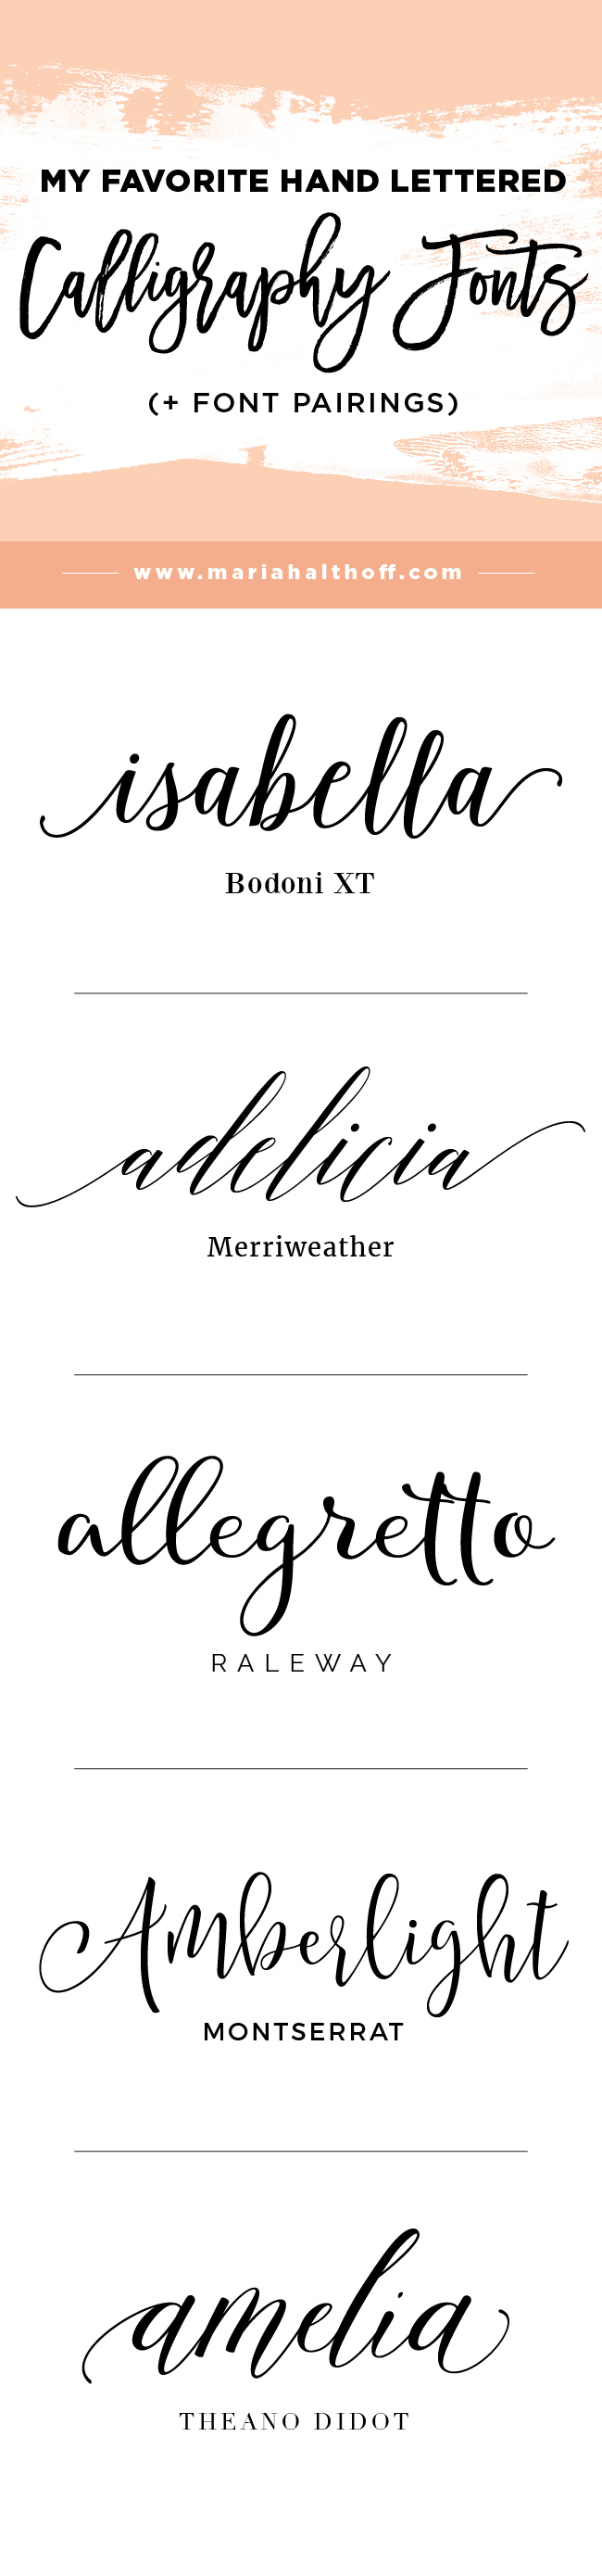 My Top 5 Favorite Hand Lettered Calligraphy Fonts Font Pairings Mariah Althoff Graphic Design Freelancing Tips